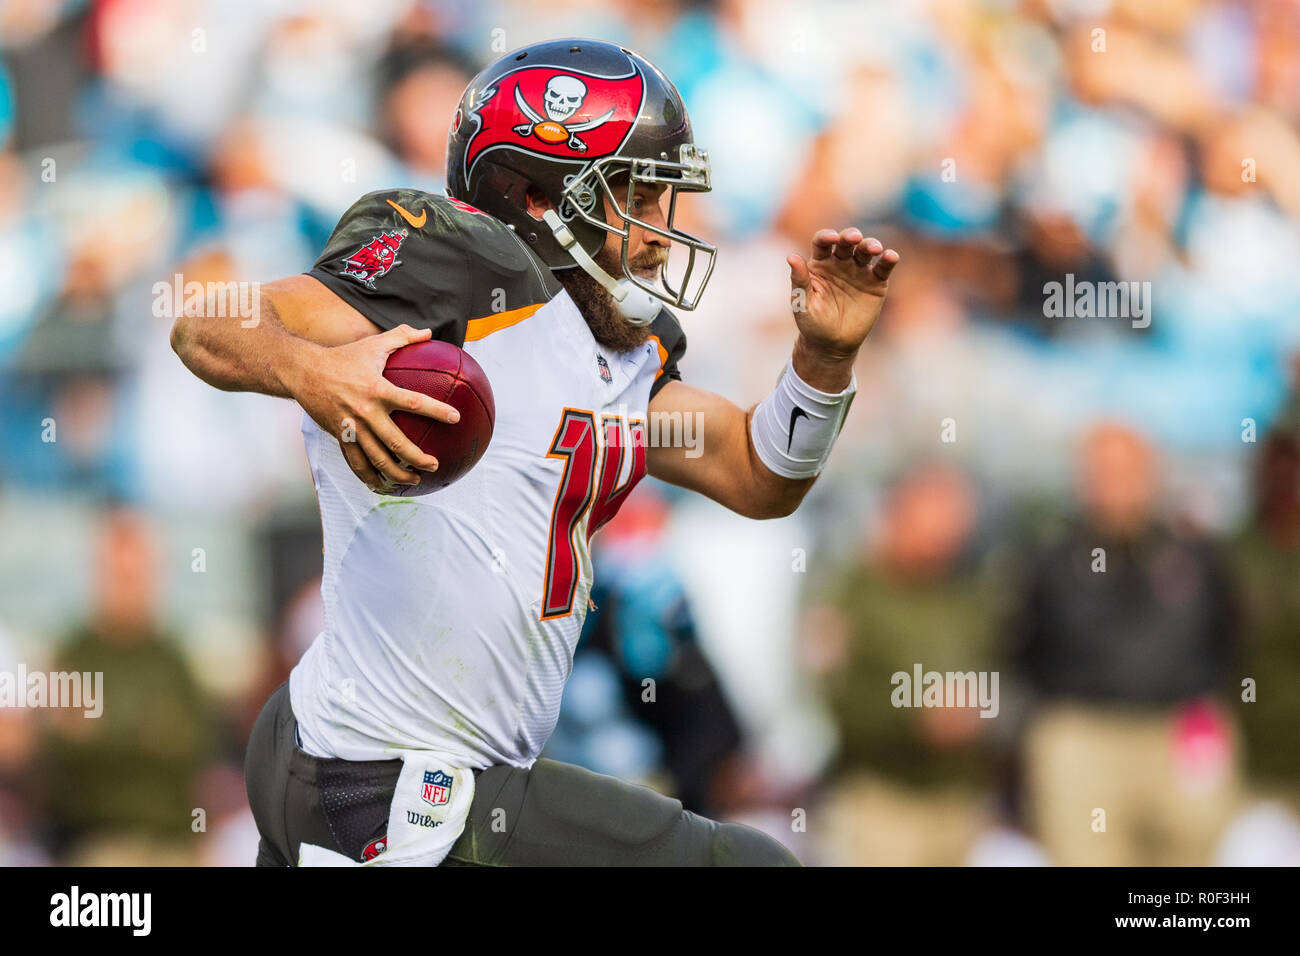 c3004634 Tampa Bay Buccaneers quarterback Ryan Fitzpatrick (14) during the NFL  football game between the Tampa Bay Buccaneers and the Carolina Panthers on  Sunday ...